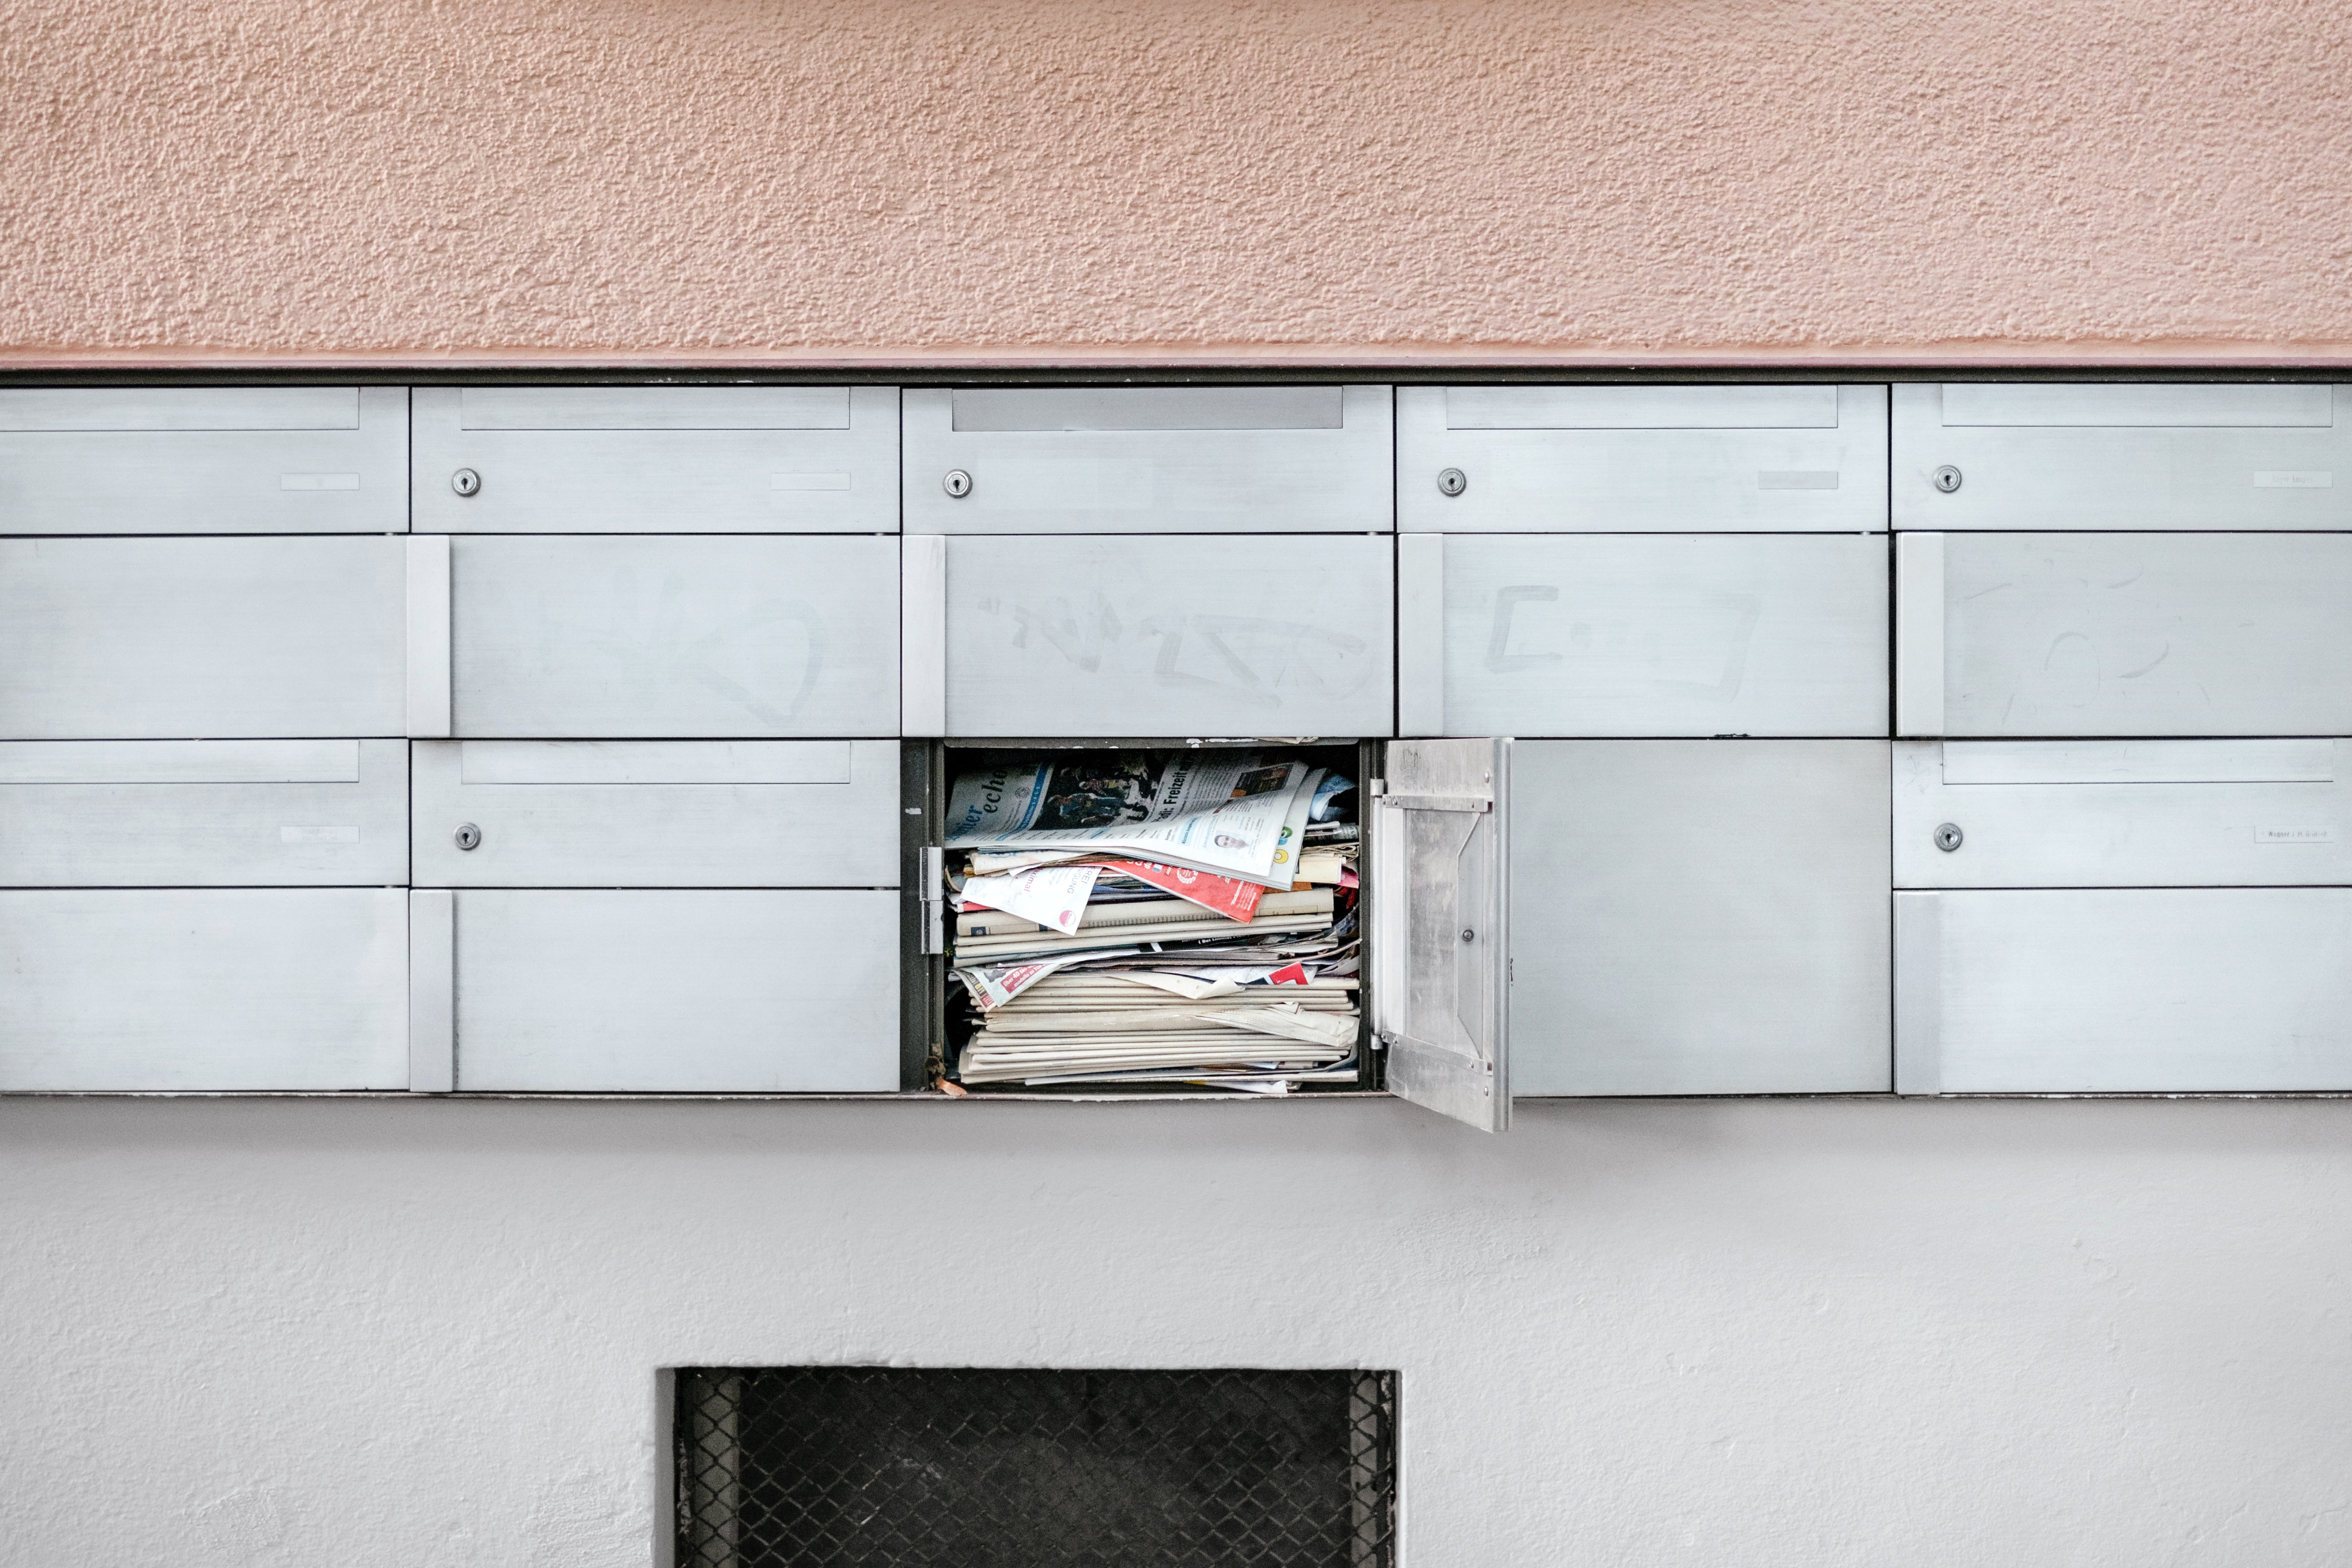 Image of a mailbox filled with mail